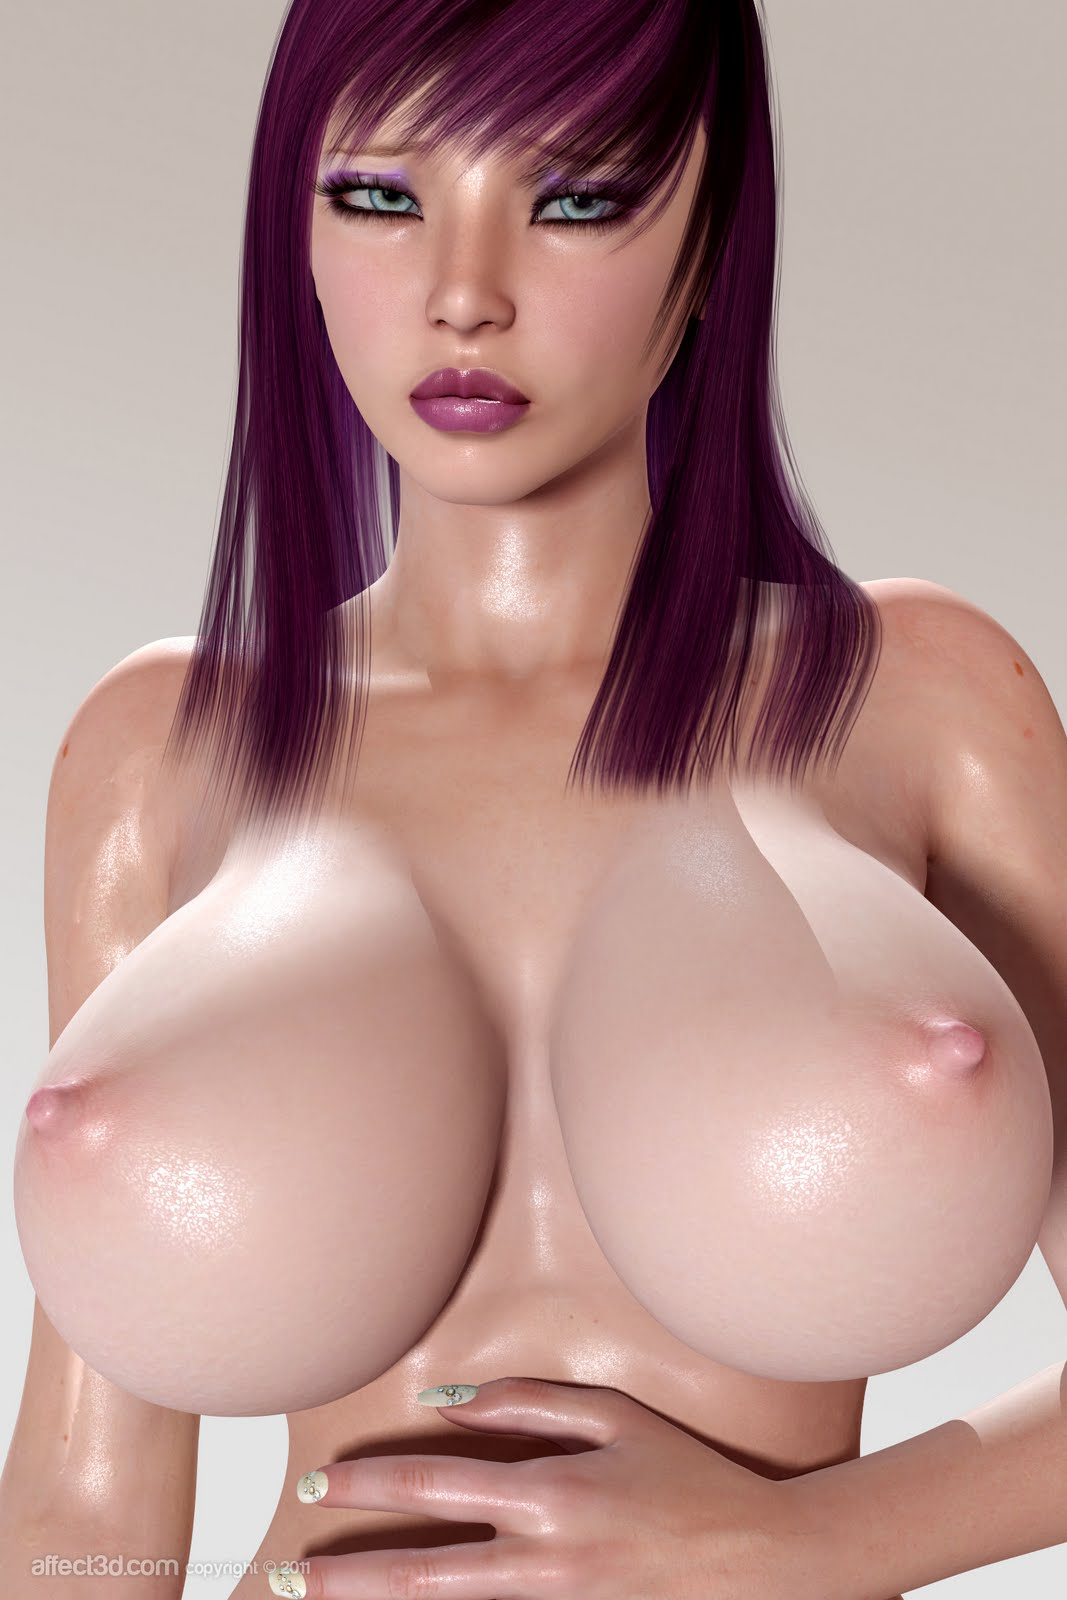 Image big boobs art 3d erotic video